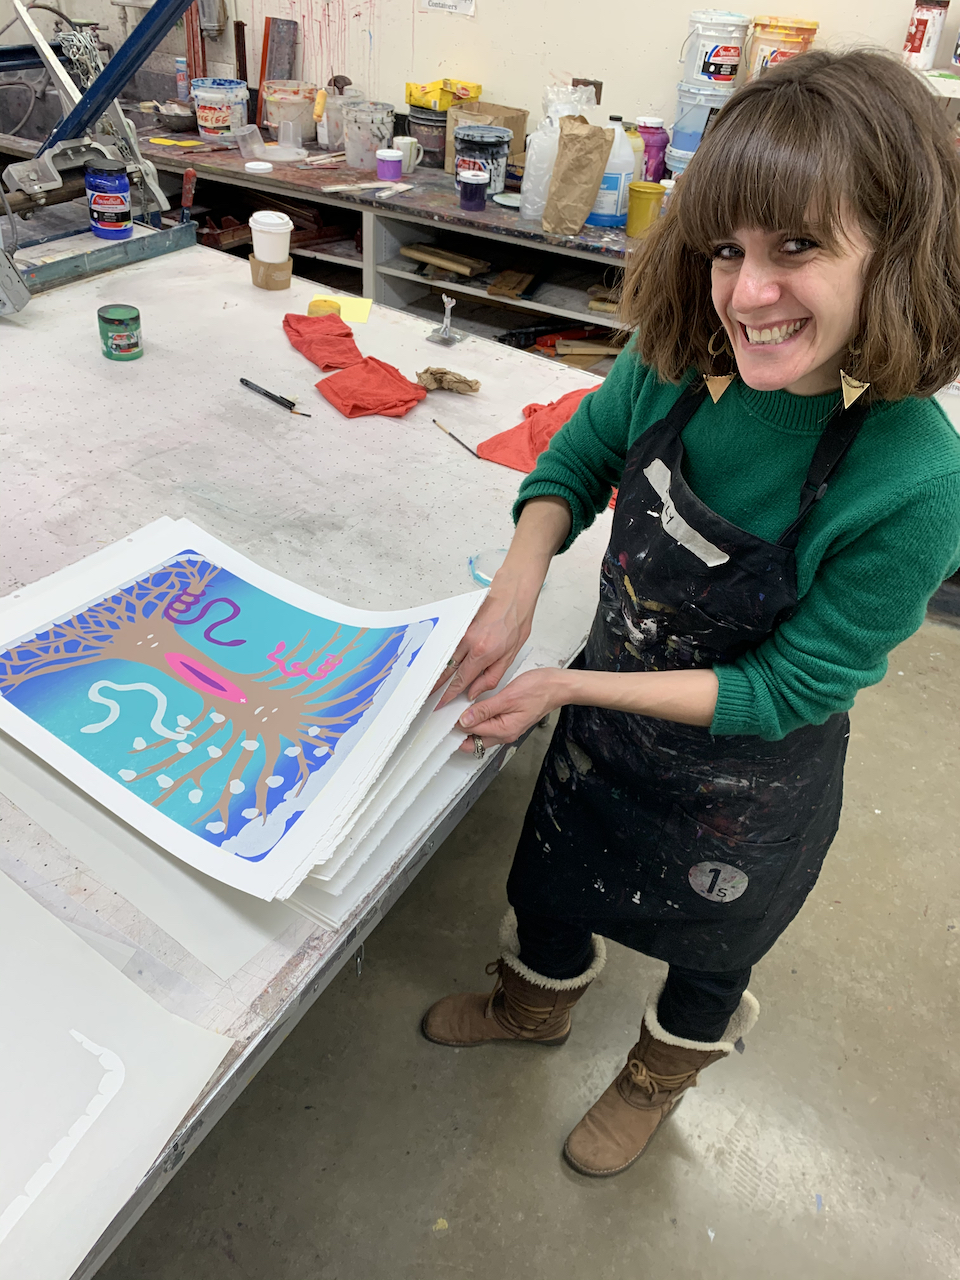 Visiting Artist Julia Curran